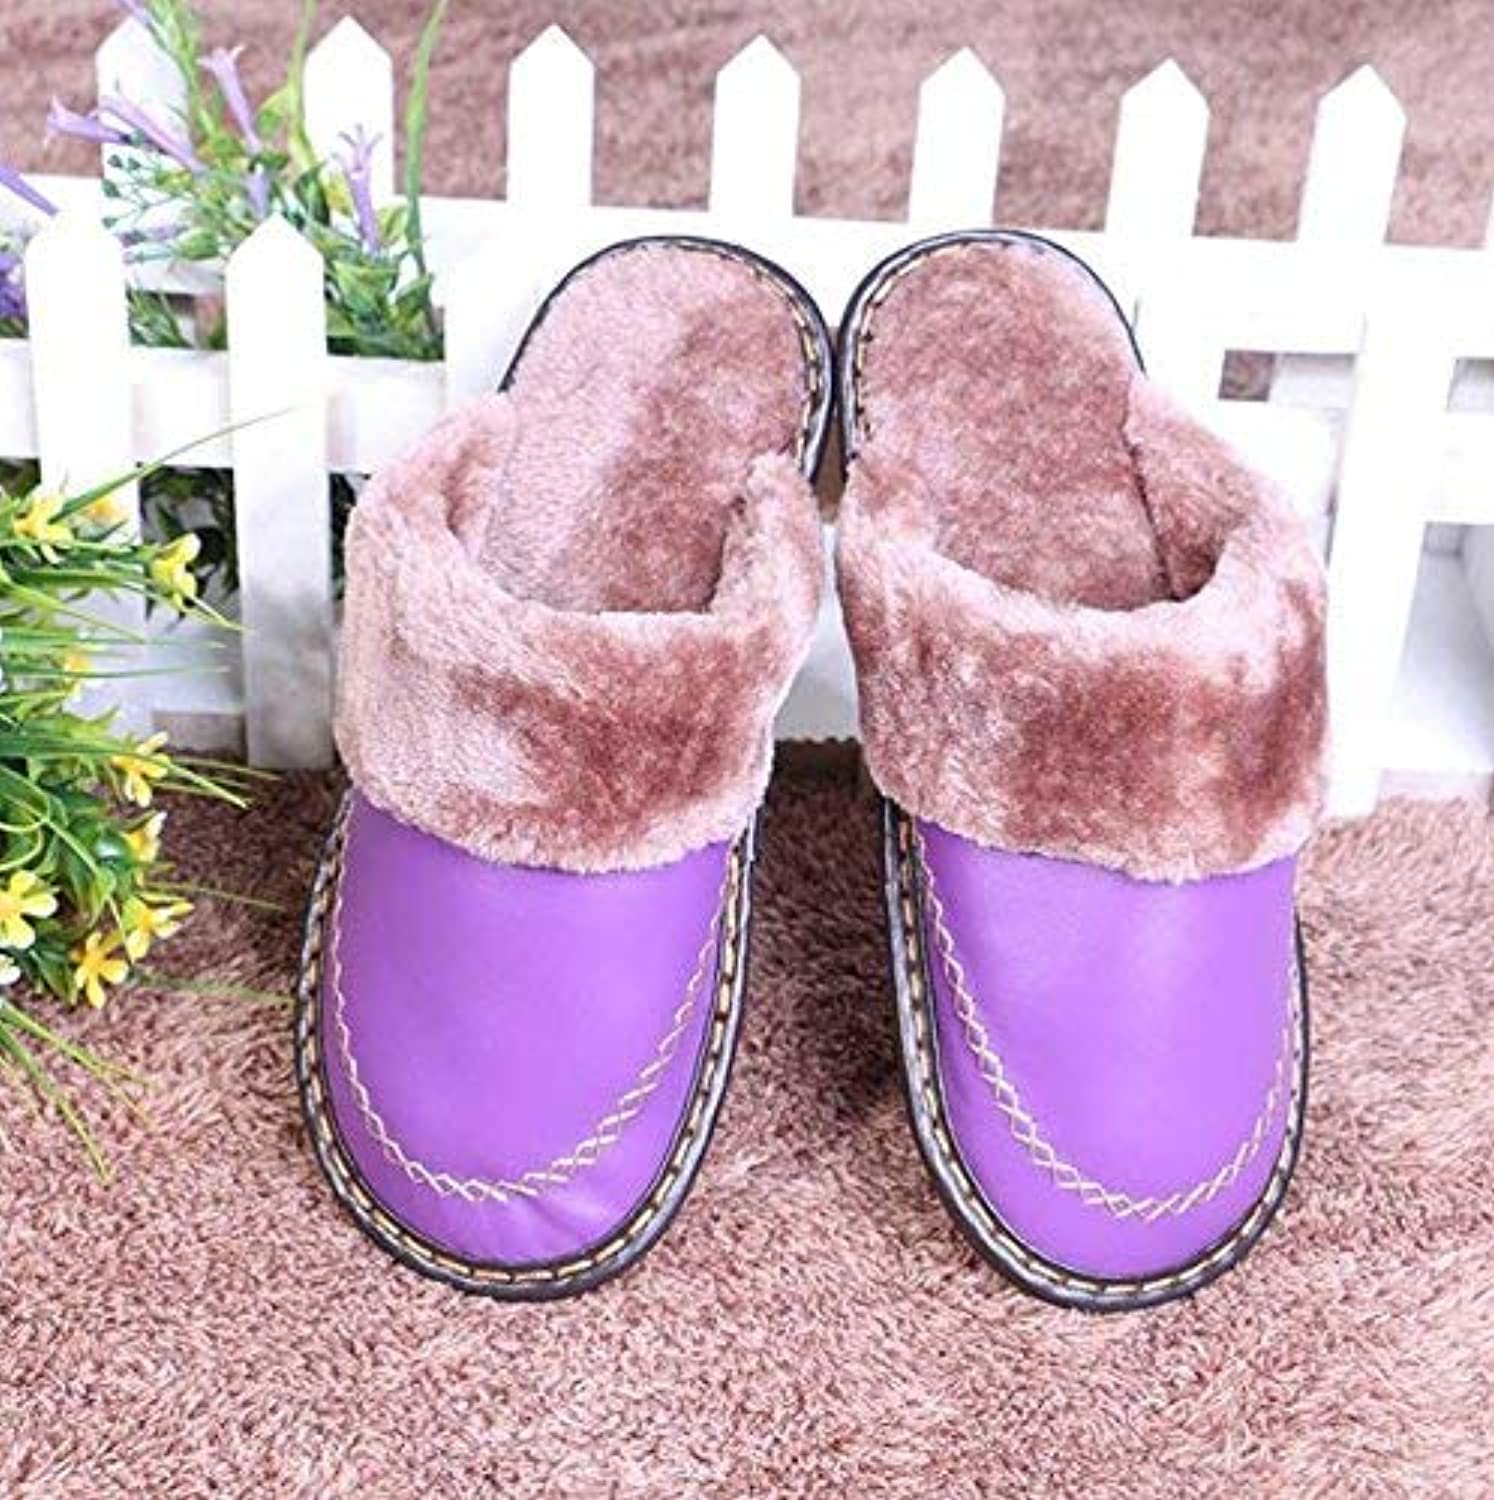 Lady Slippers Womens shoes Lady Cotton Slippers Indoors to Keep Warm in Autumn and Winter Faux Leather Slippers Purple pink Red Keep Warm shoes for Women